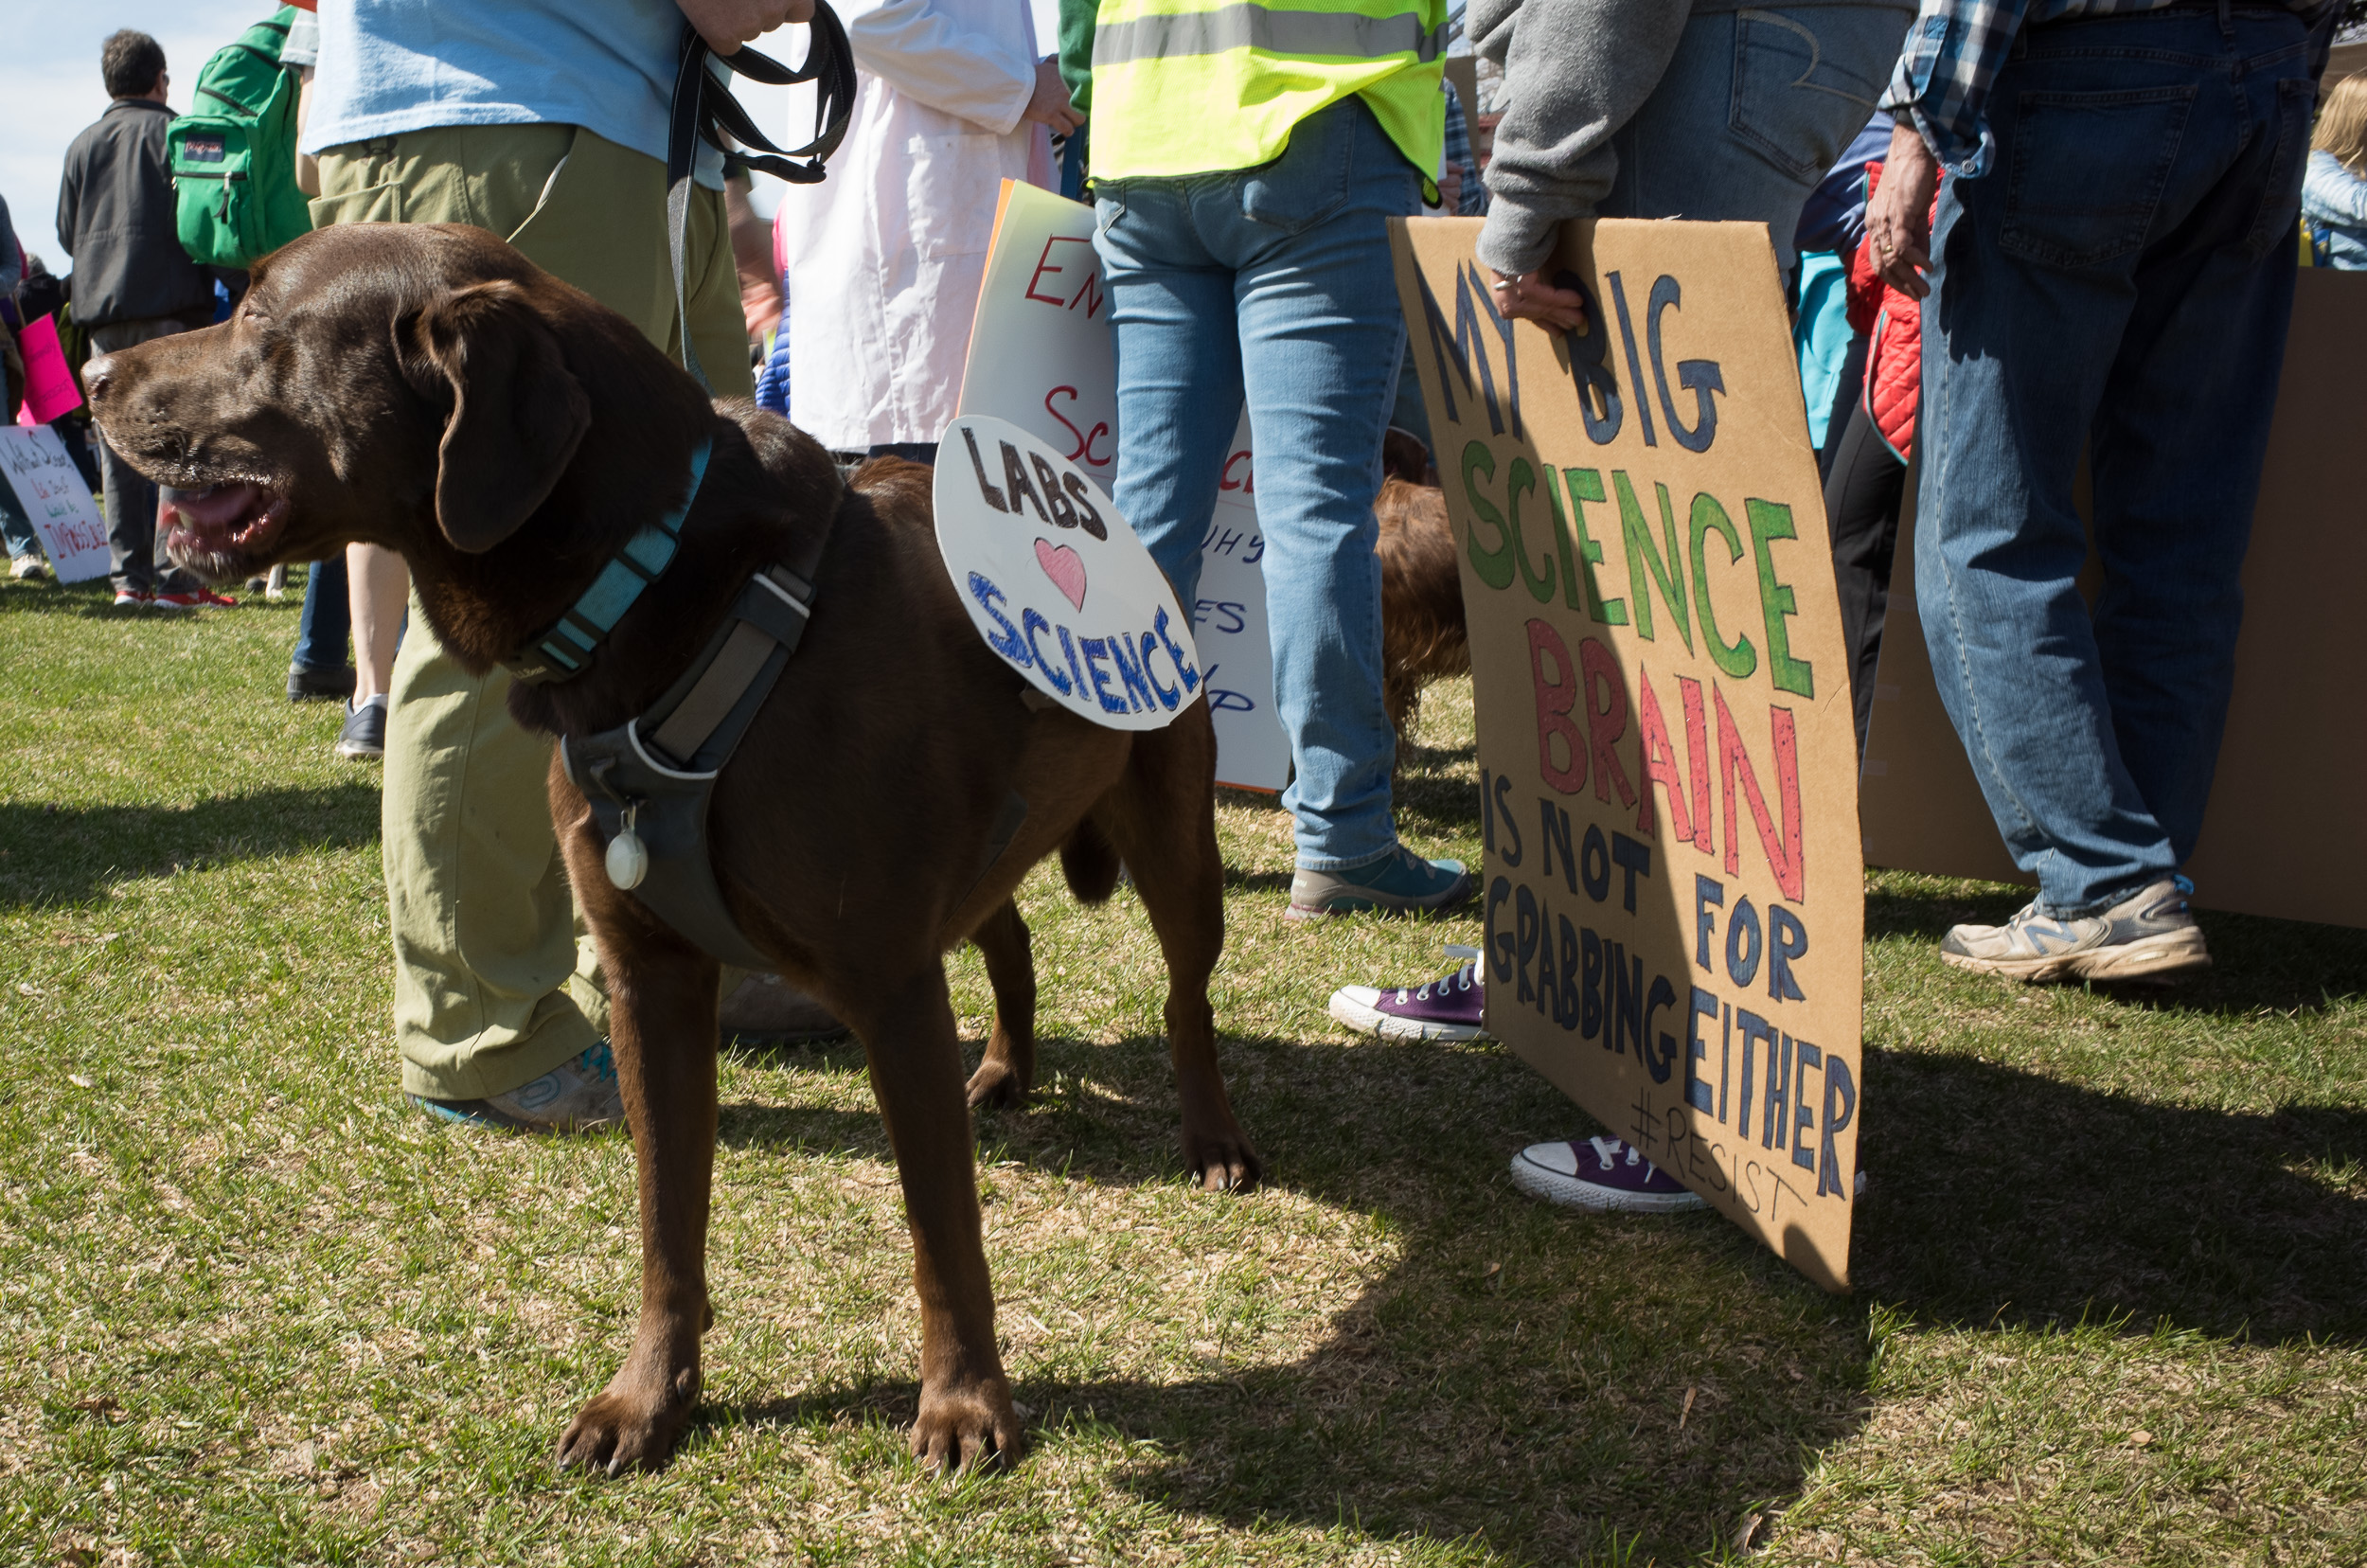 march for science 4-2017-0009719.jpg